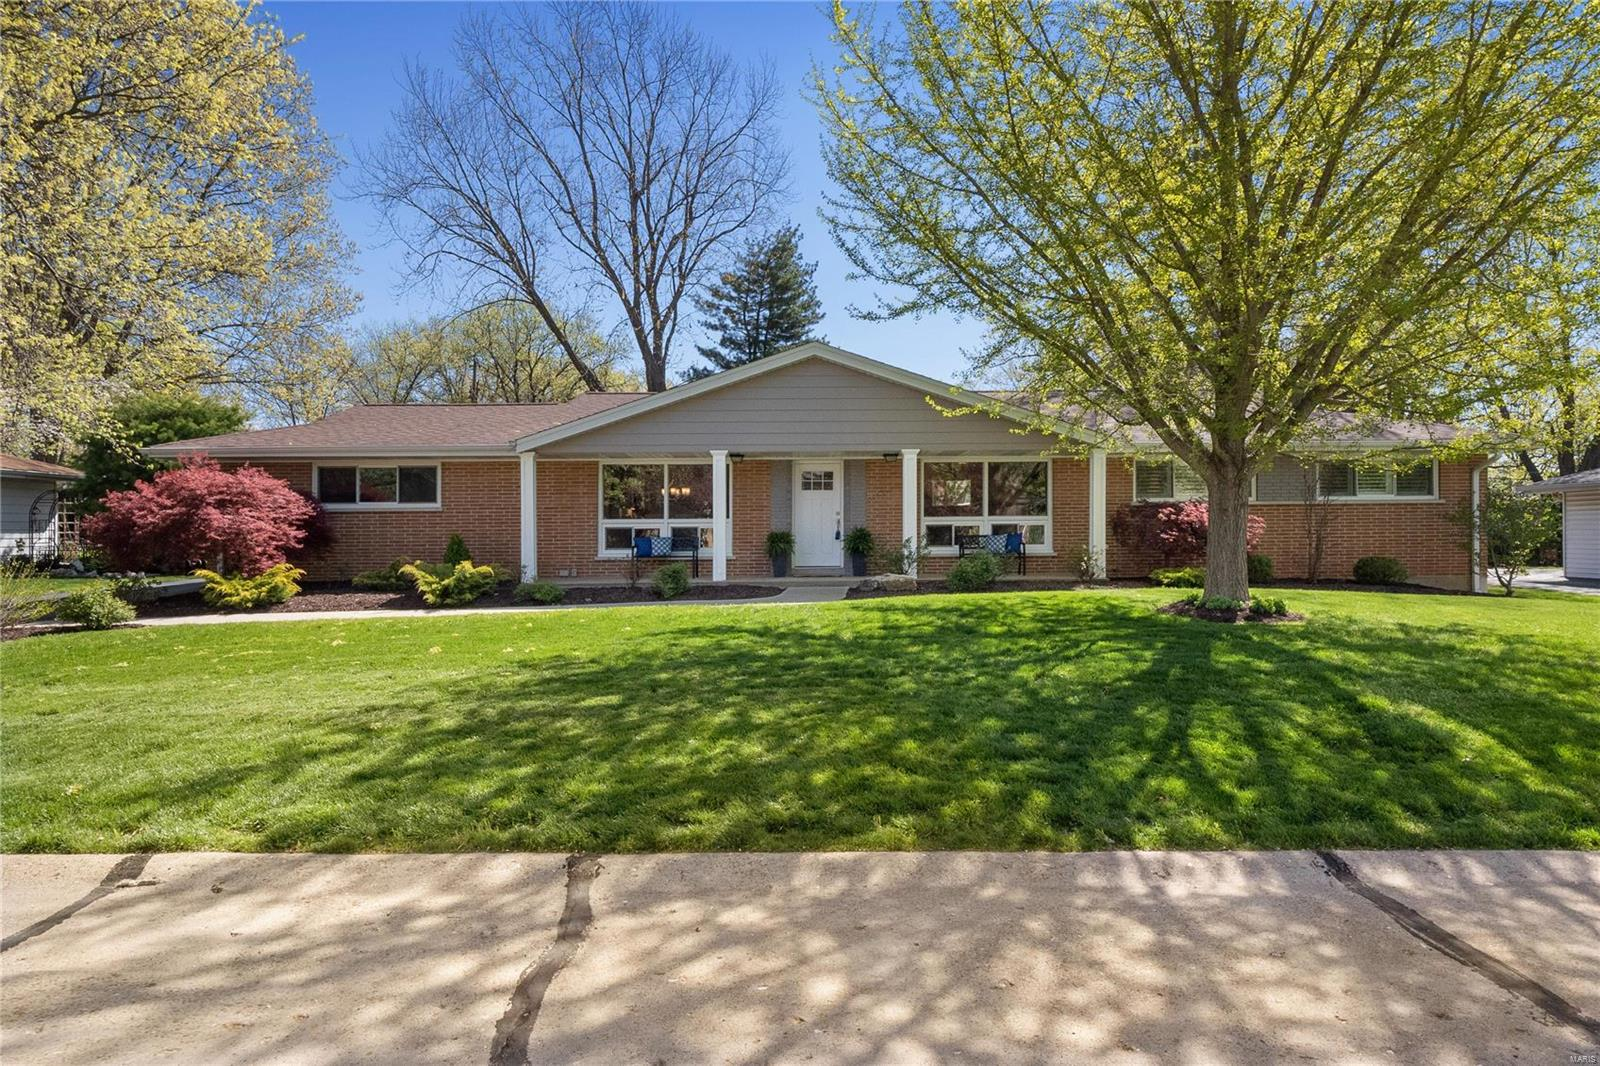 832 Berry Hill Property Photo - Olivette, MO real estate listing